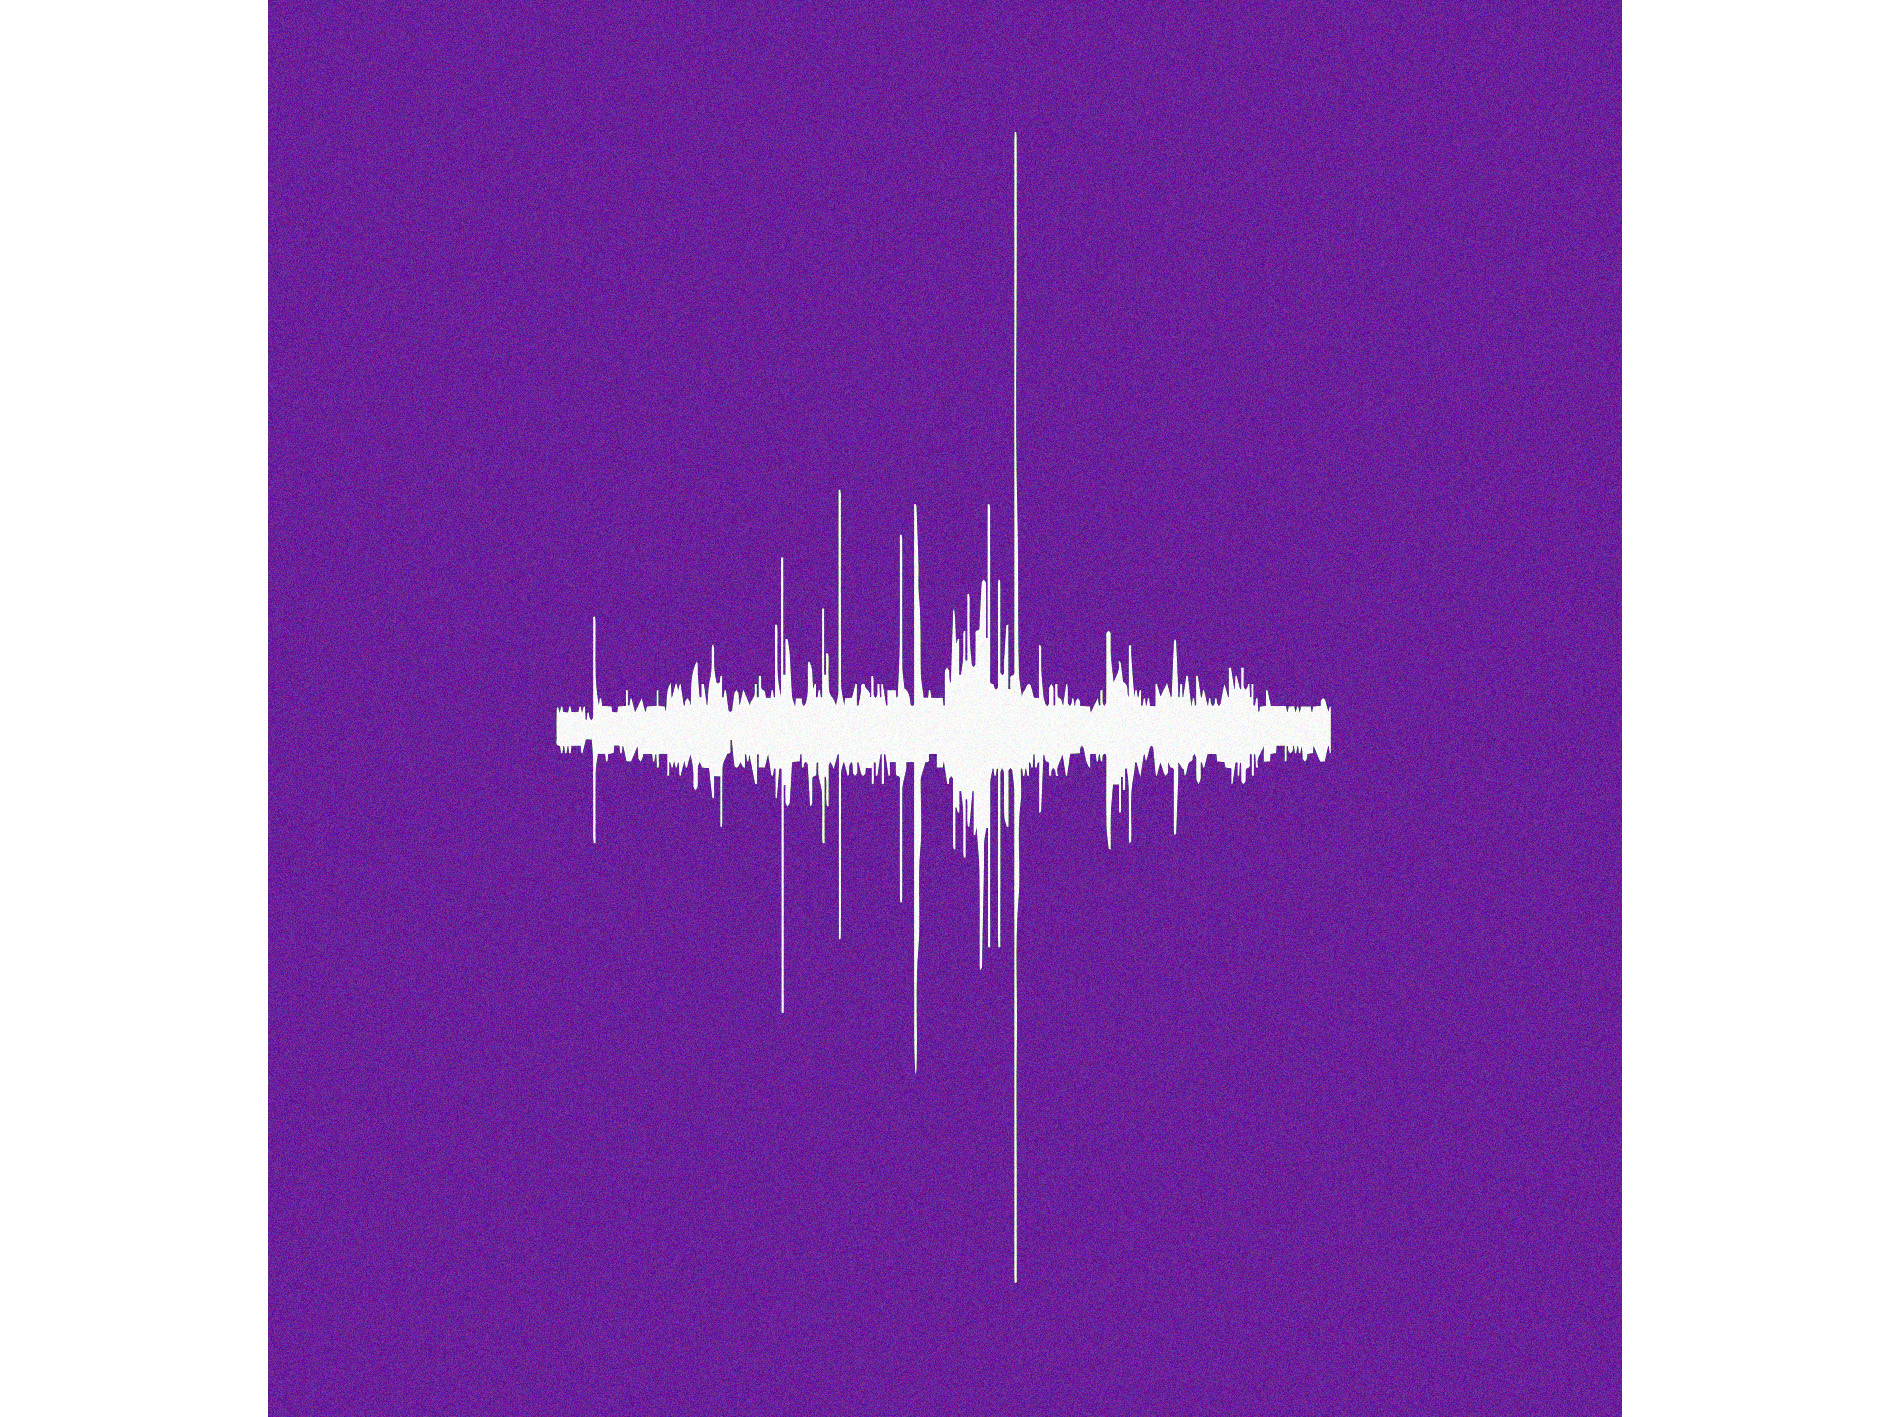 Sound wave of printing in LCC Reprographics studio Recorded on iPhone 6, 23 January 2018